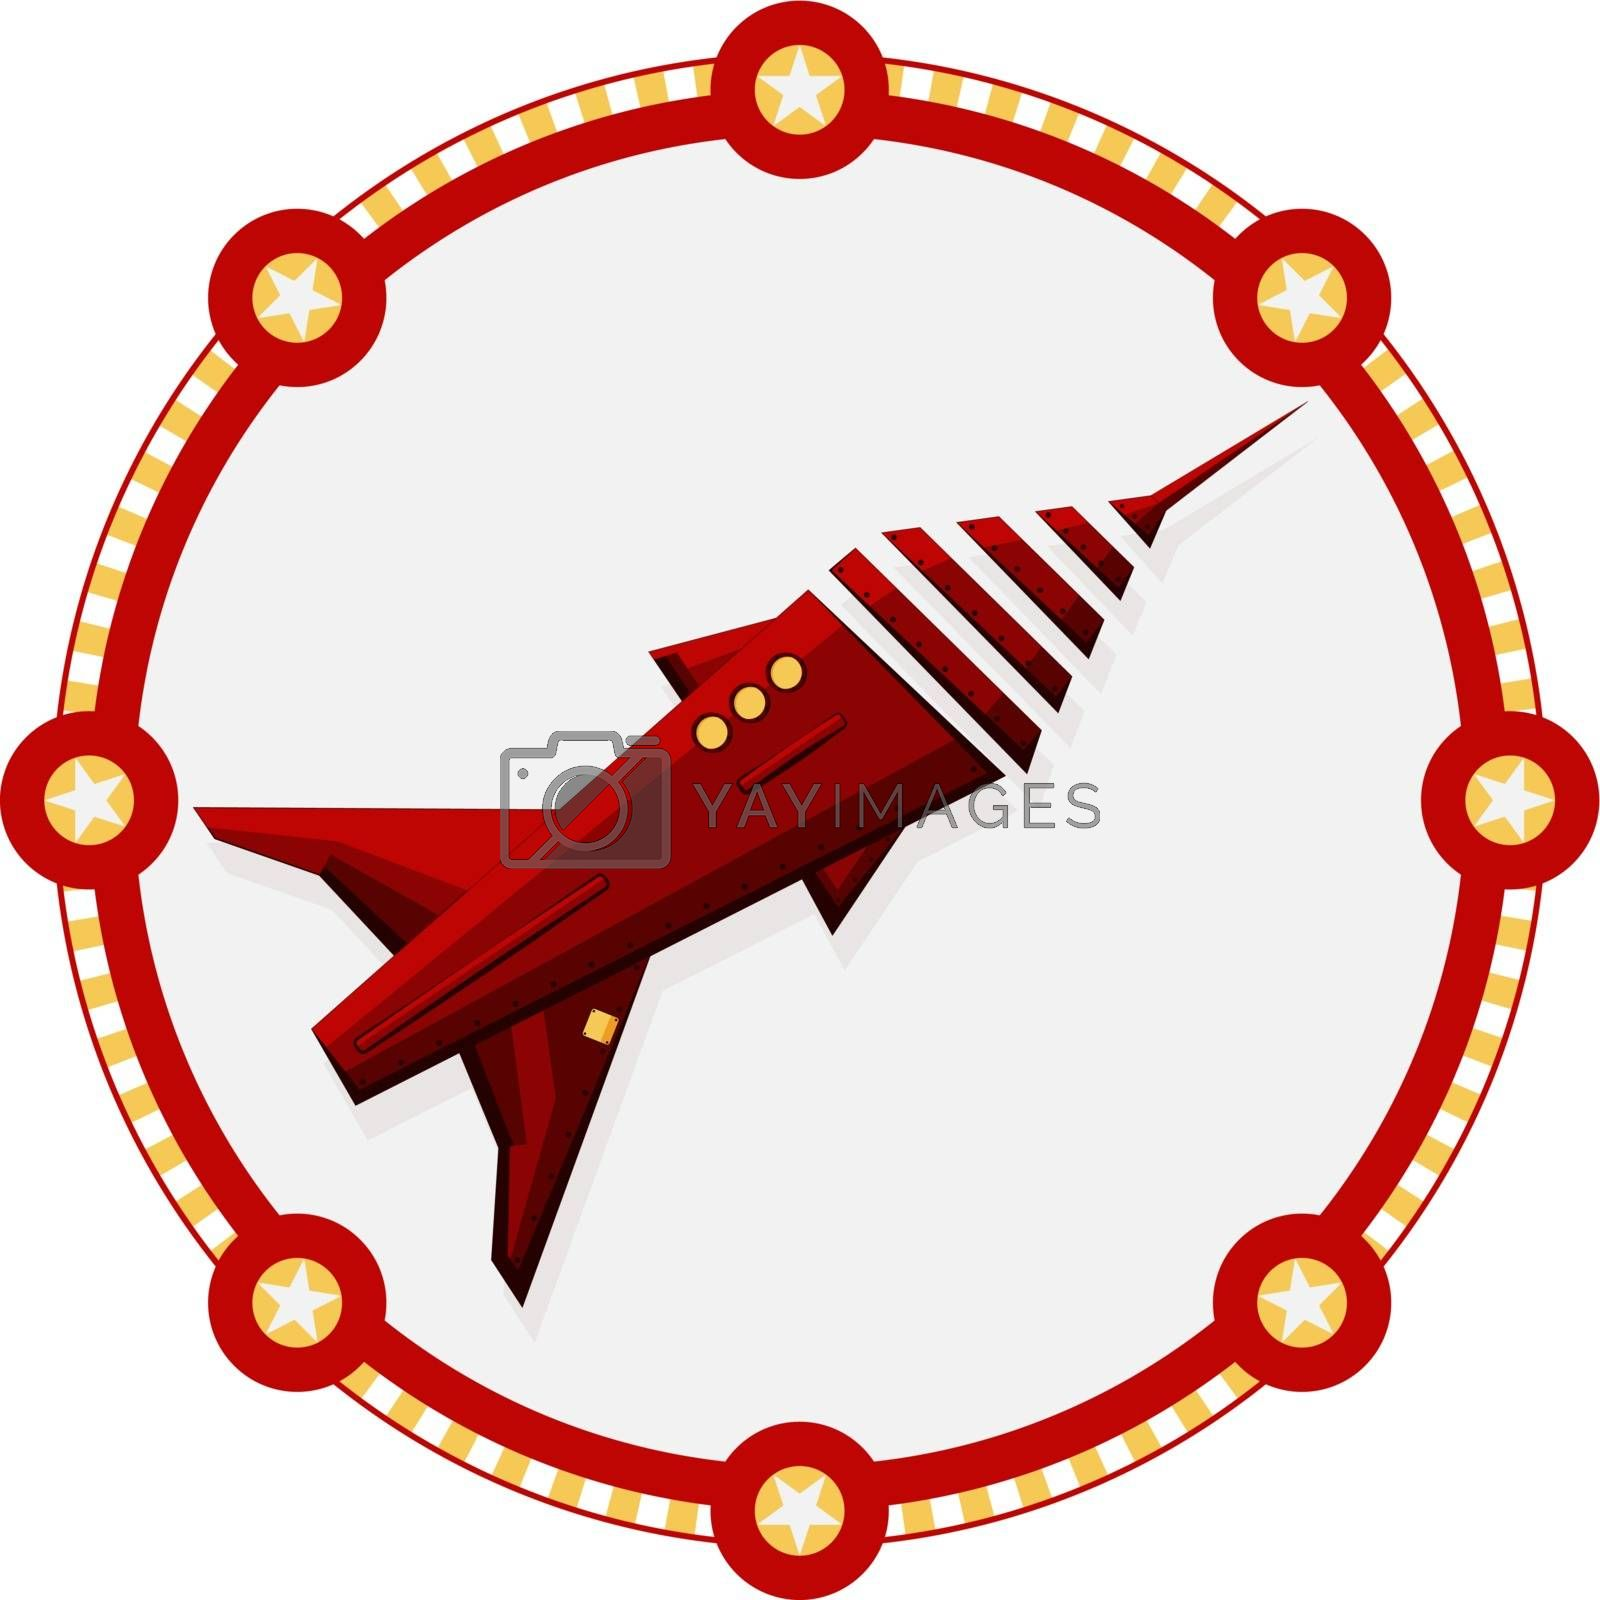 Isolated red space rocket with a round frame